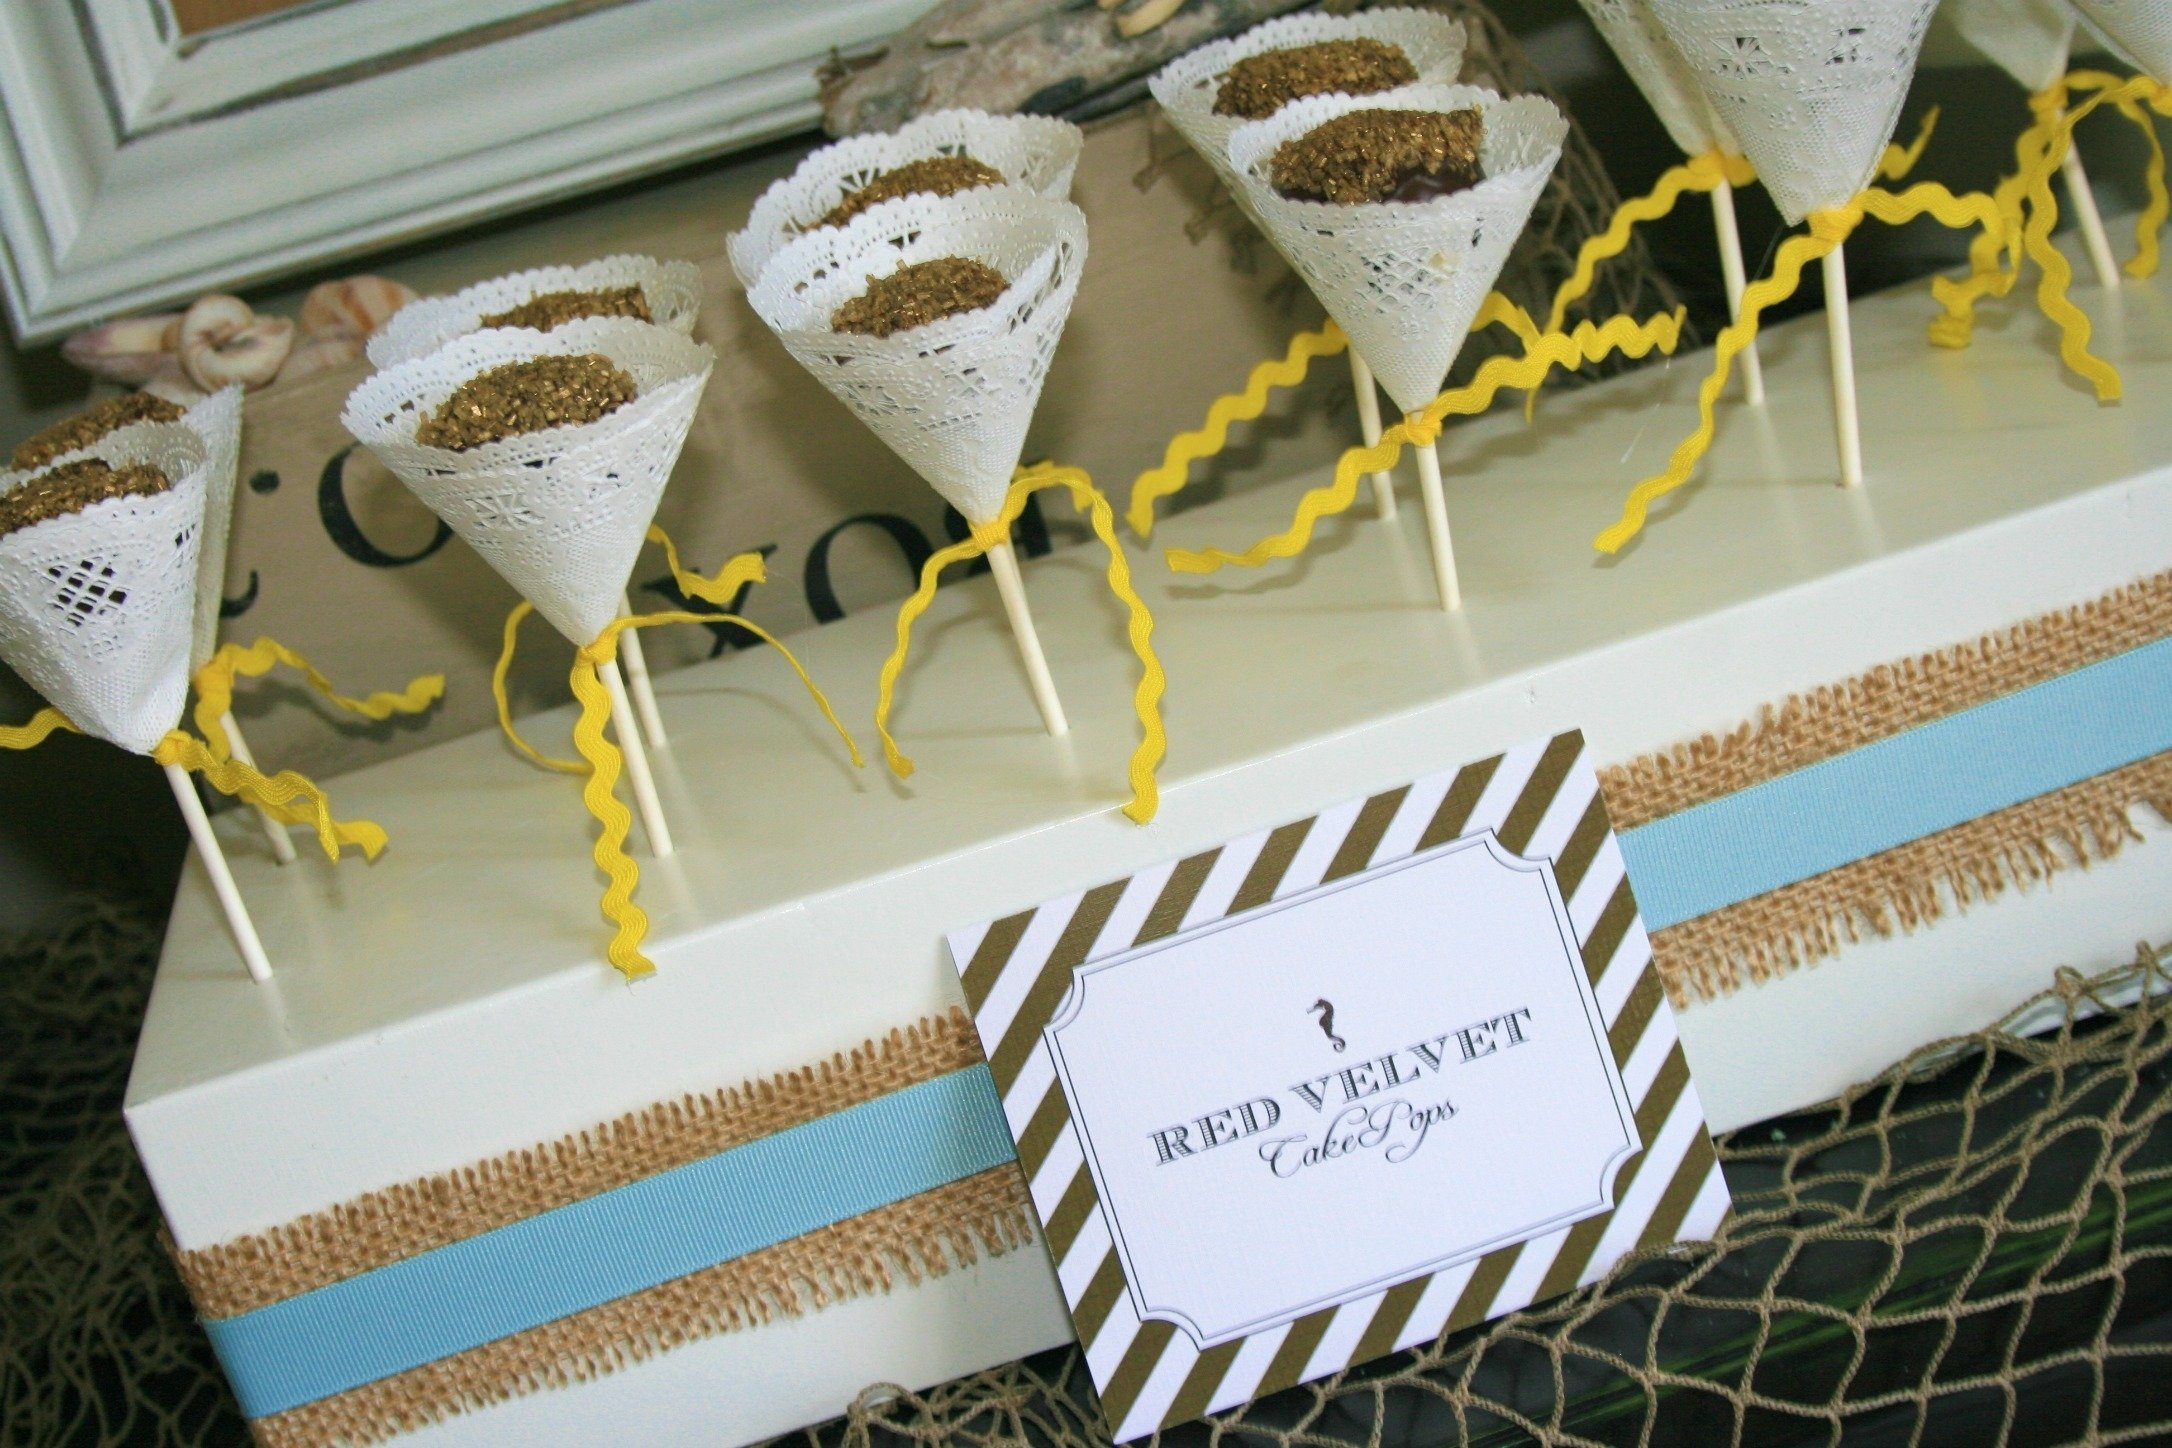 10 Lovable Homemade Baby Shower Party Favors Ideas ideas baby shower party favor boy simple decoration for decorations 2021